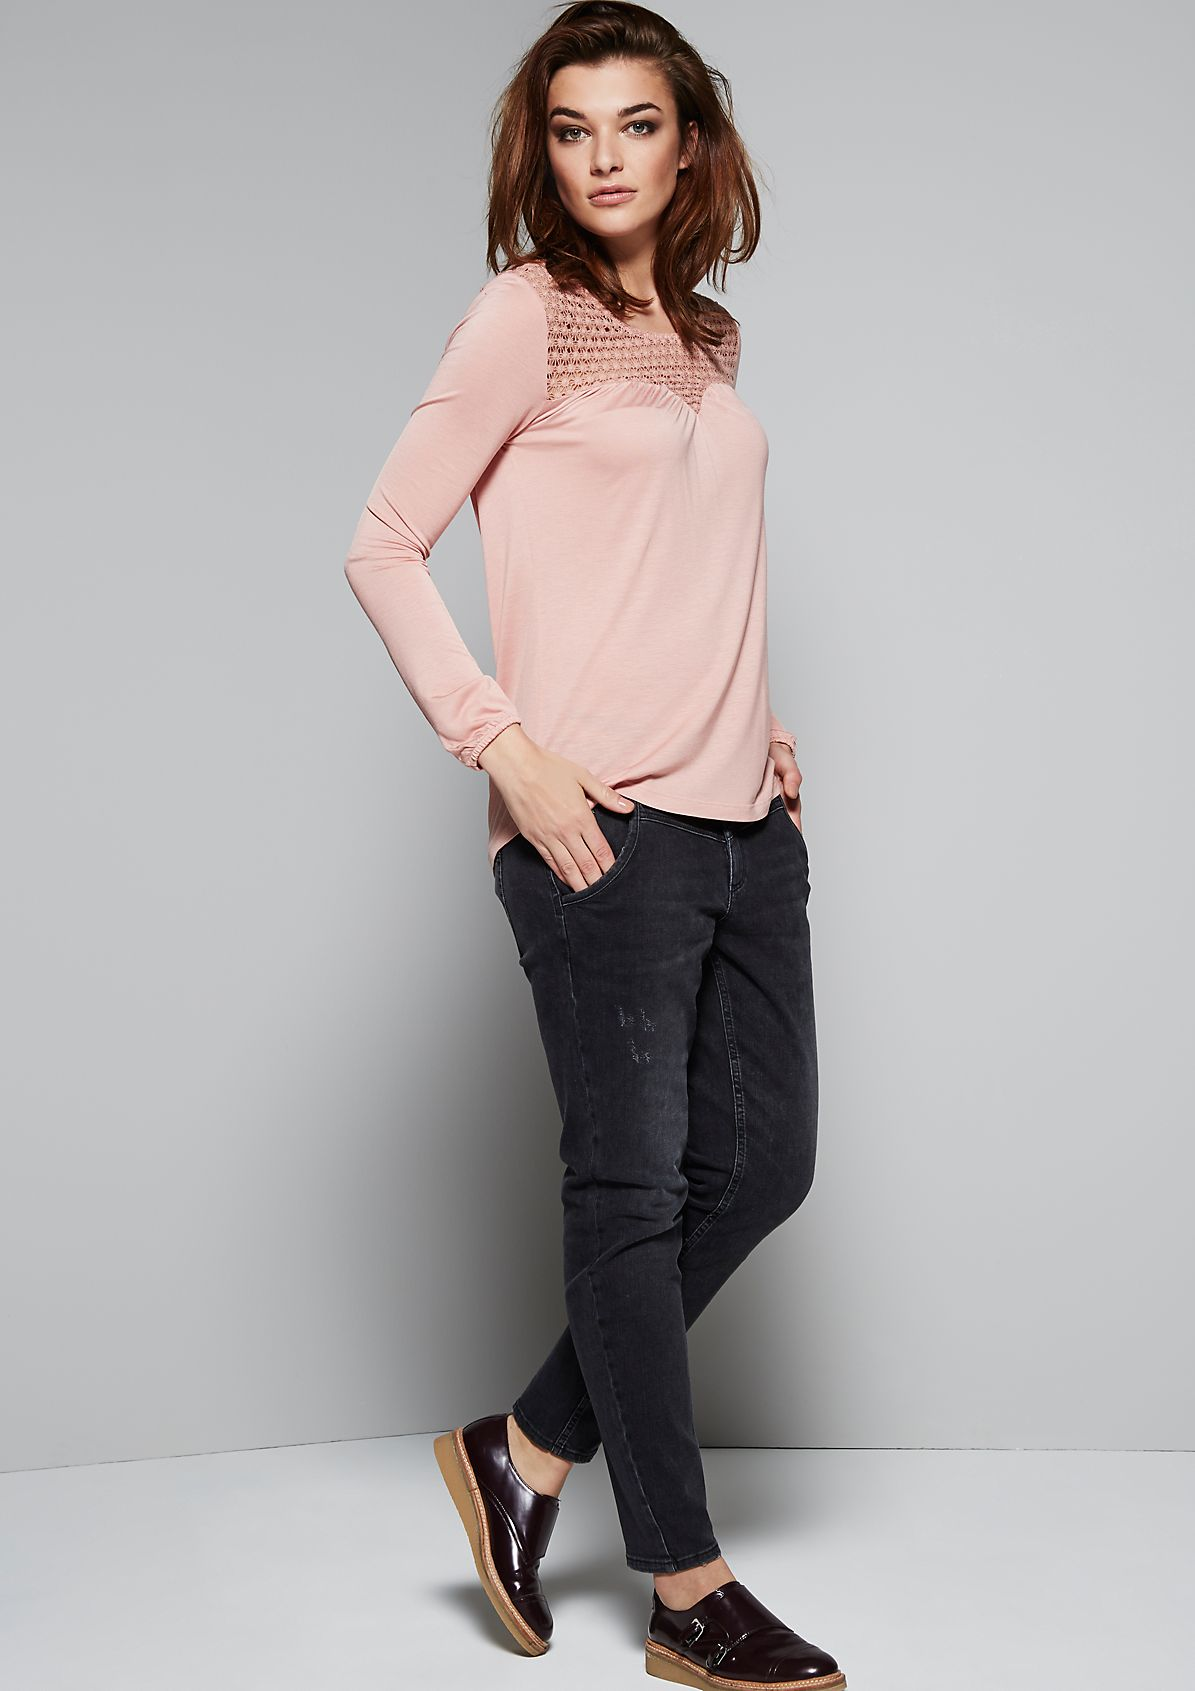 Classic long sleeve top with a decorative lace panel from s.Oliver